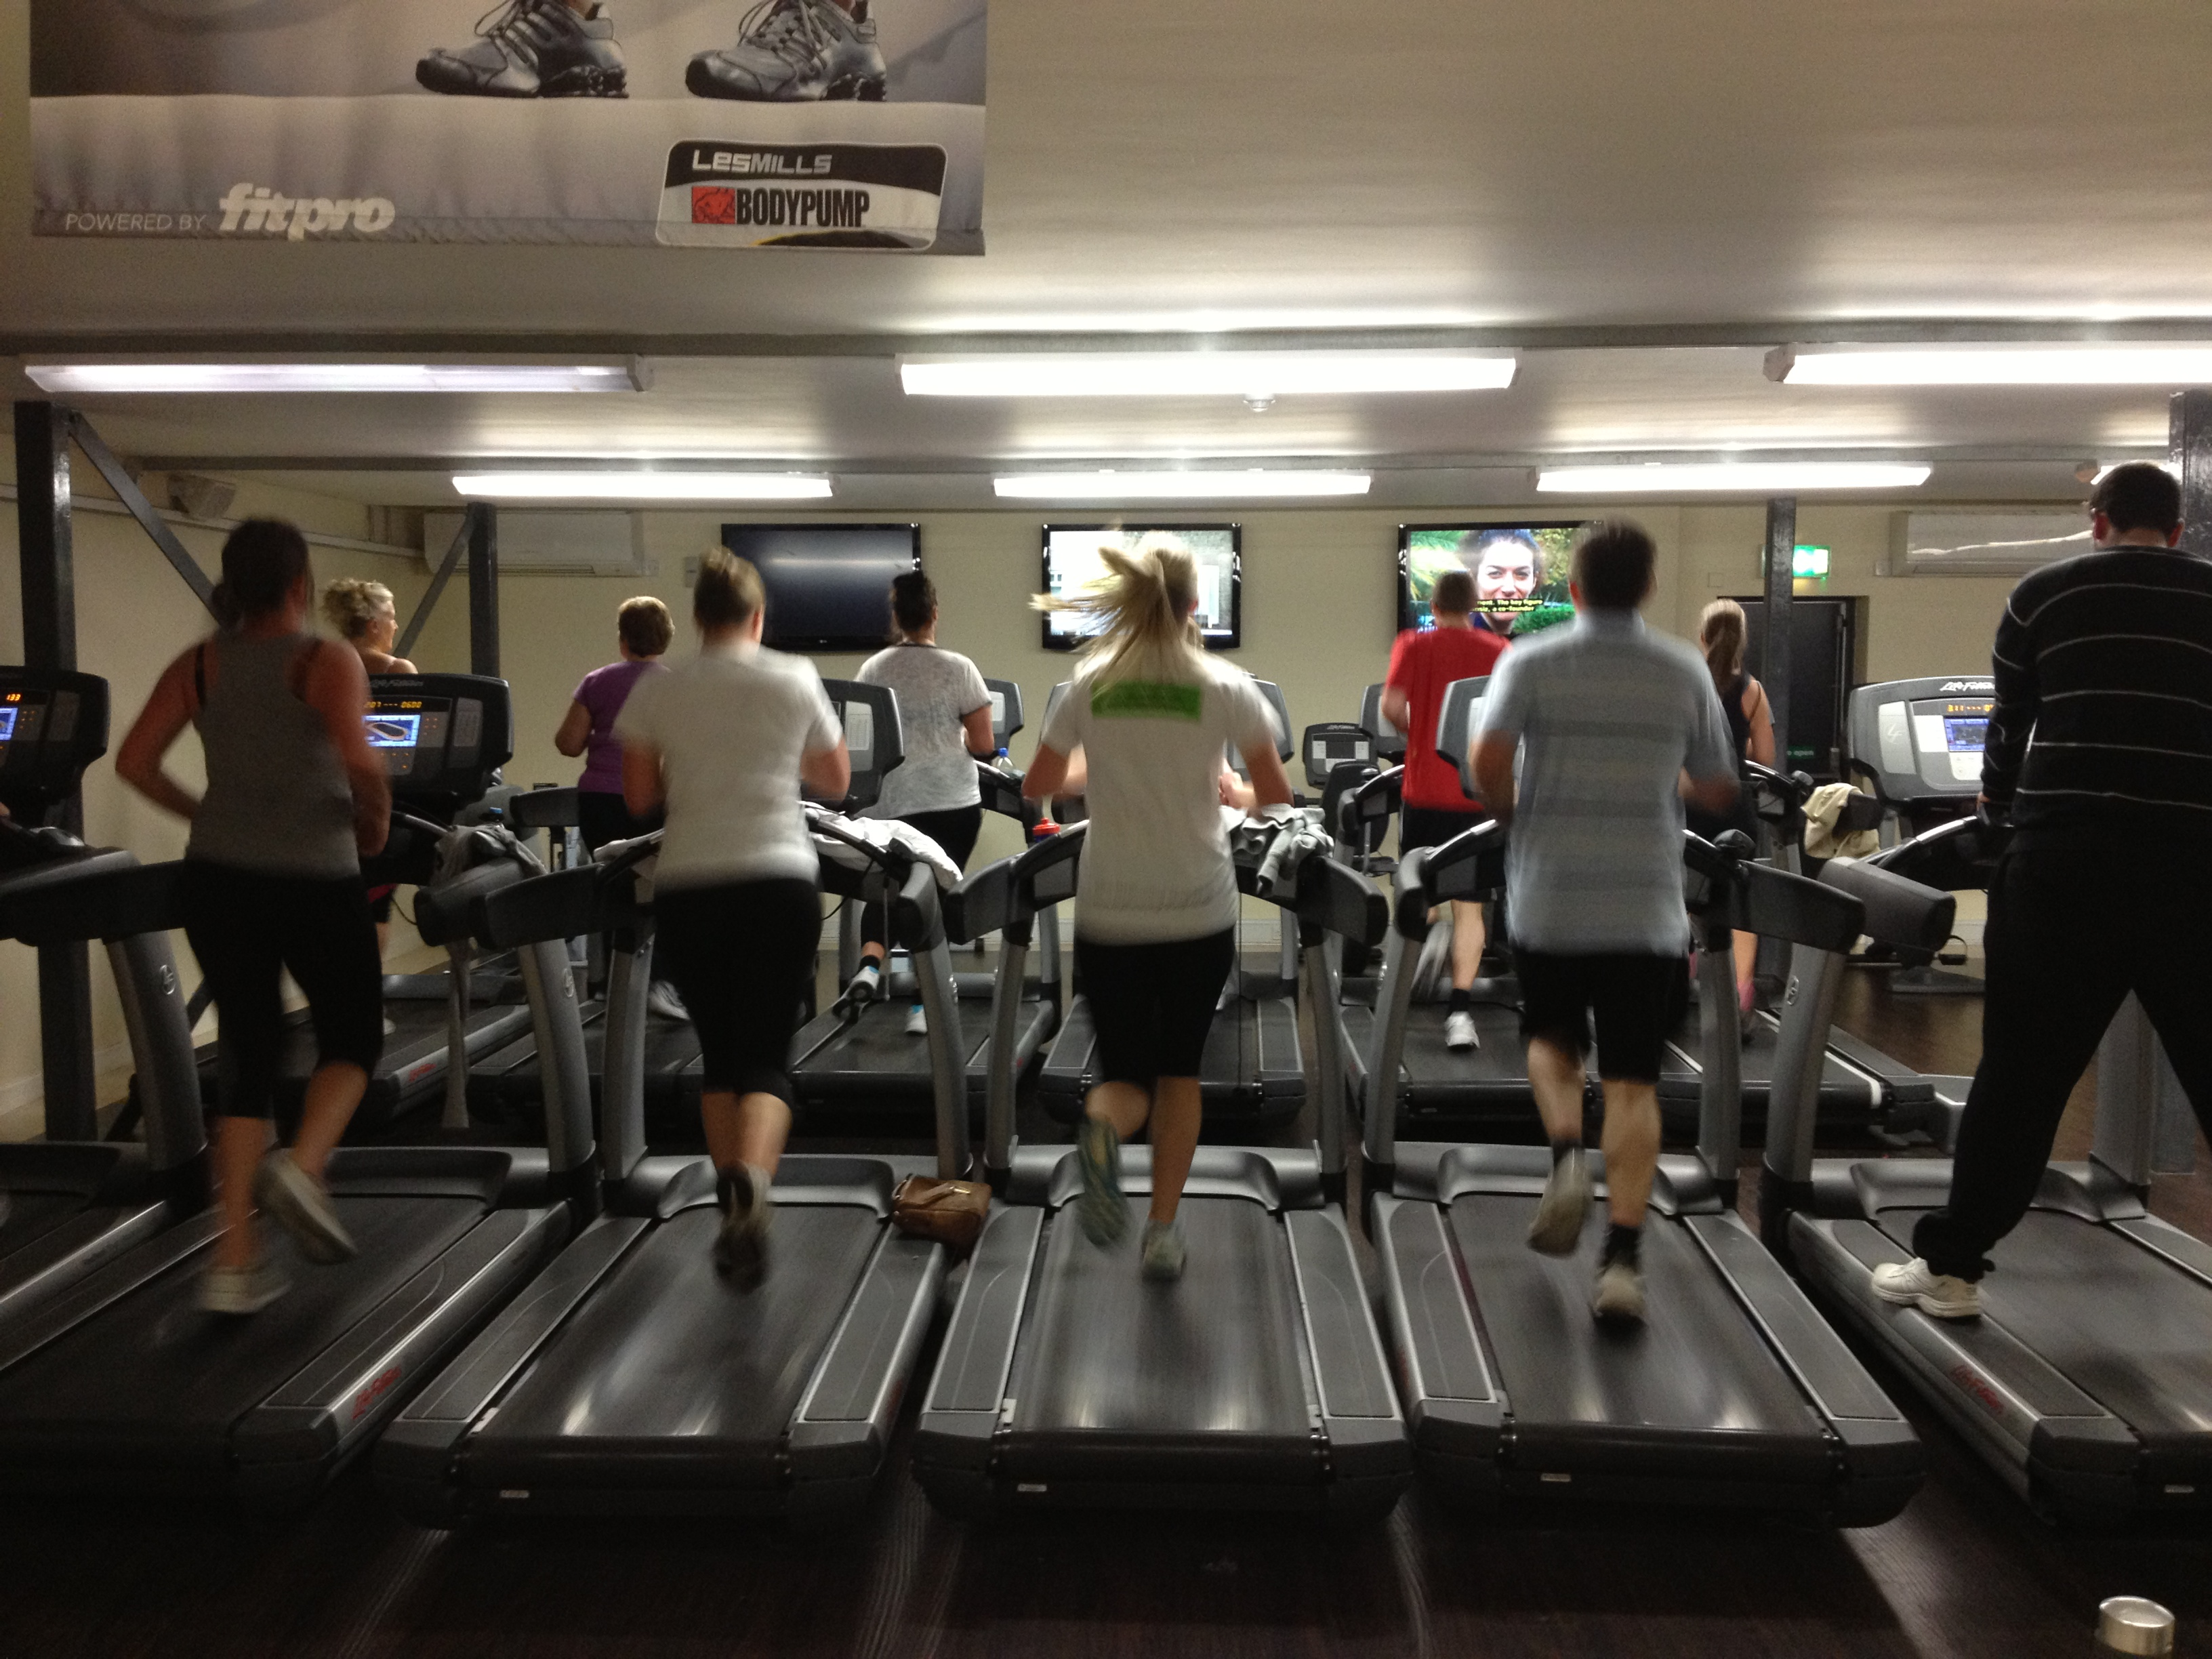 Personal Trainer Stockport, Weight Loss Stockport, Stockport Gym